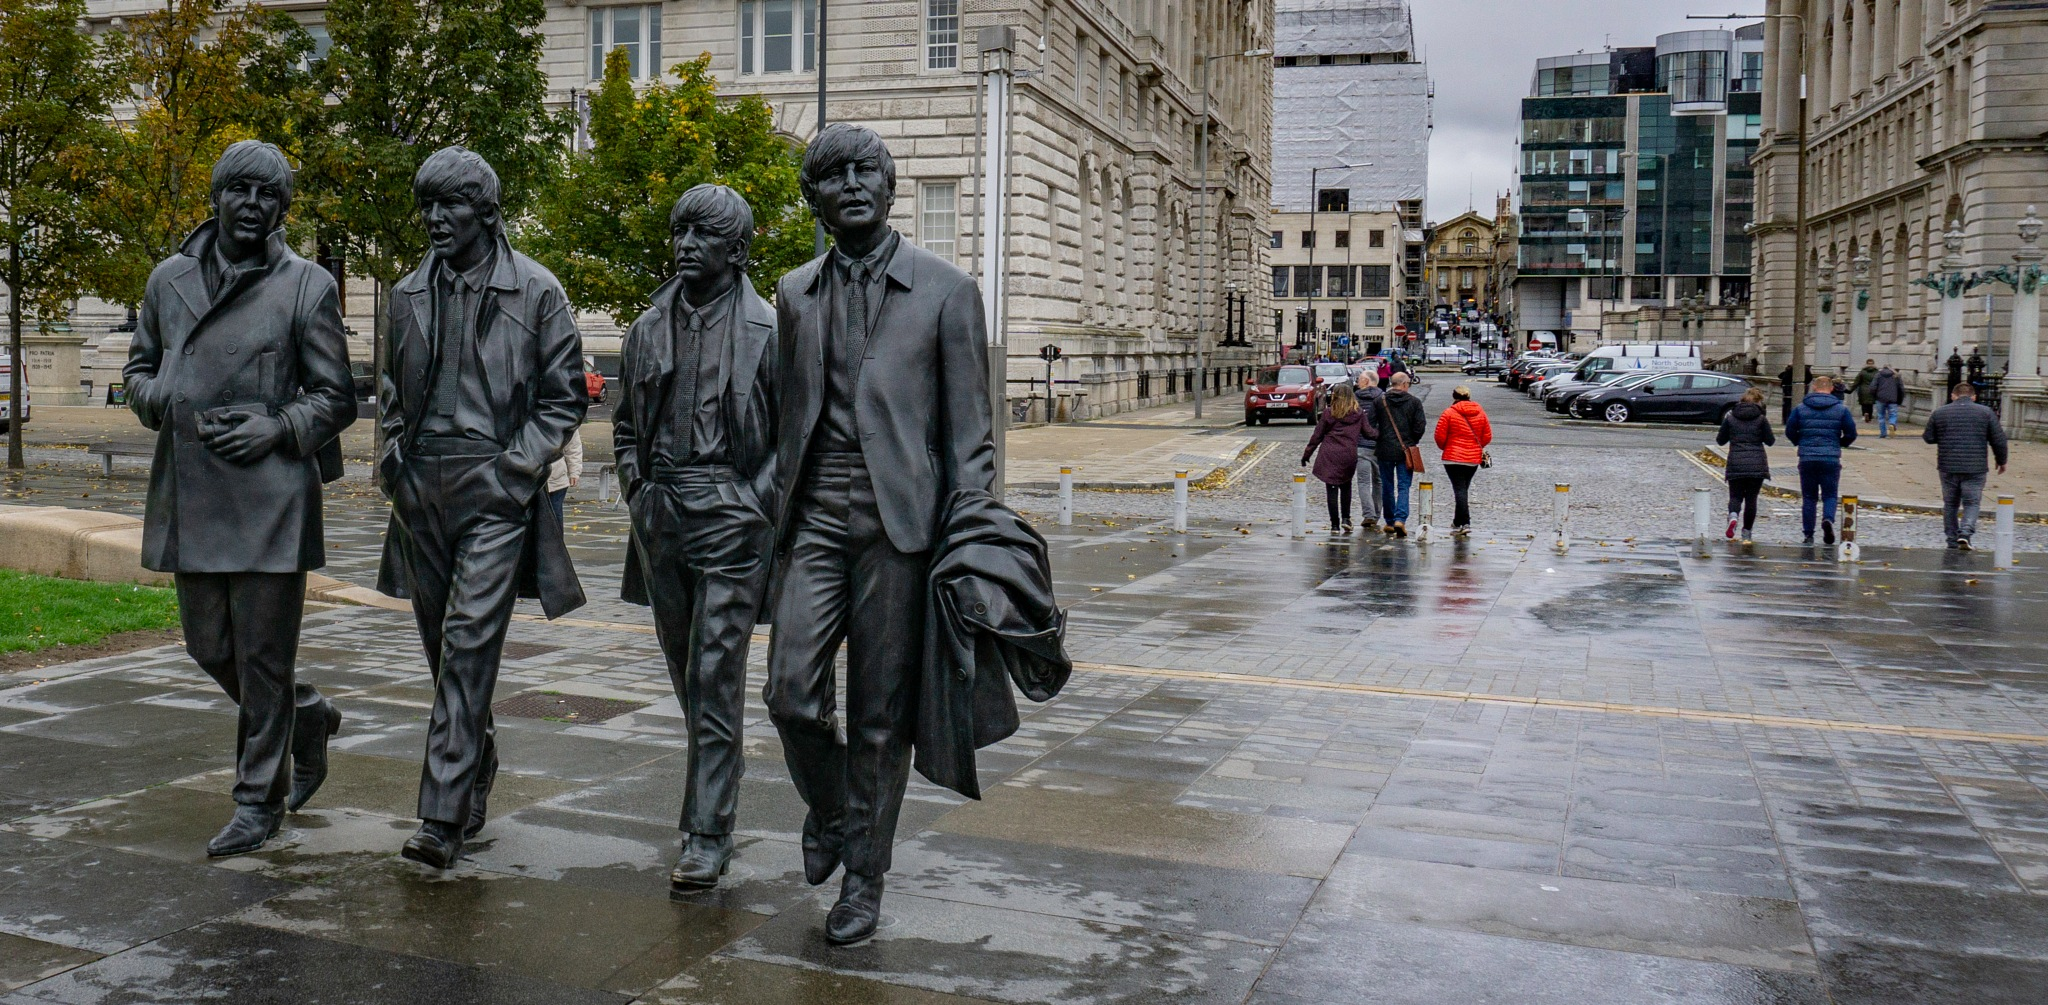 The Fab 4 by David Drummond